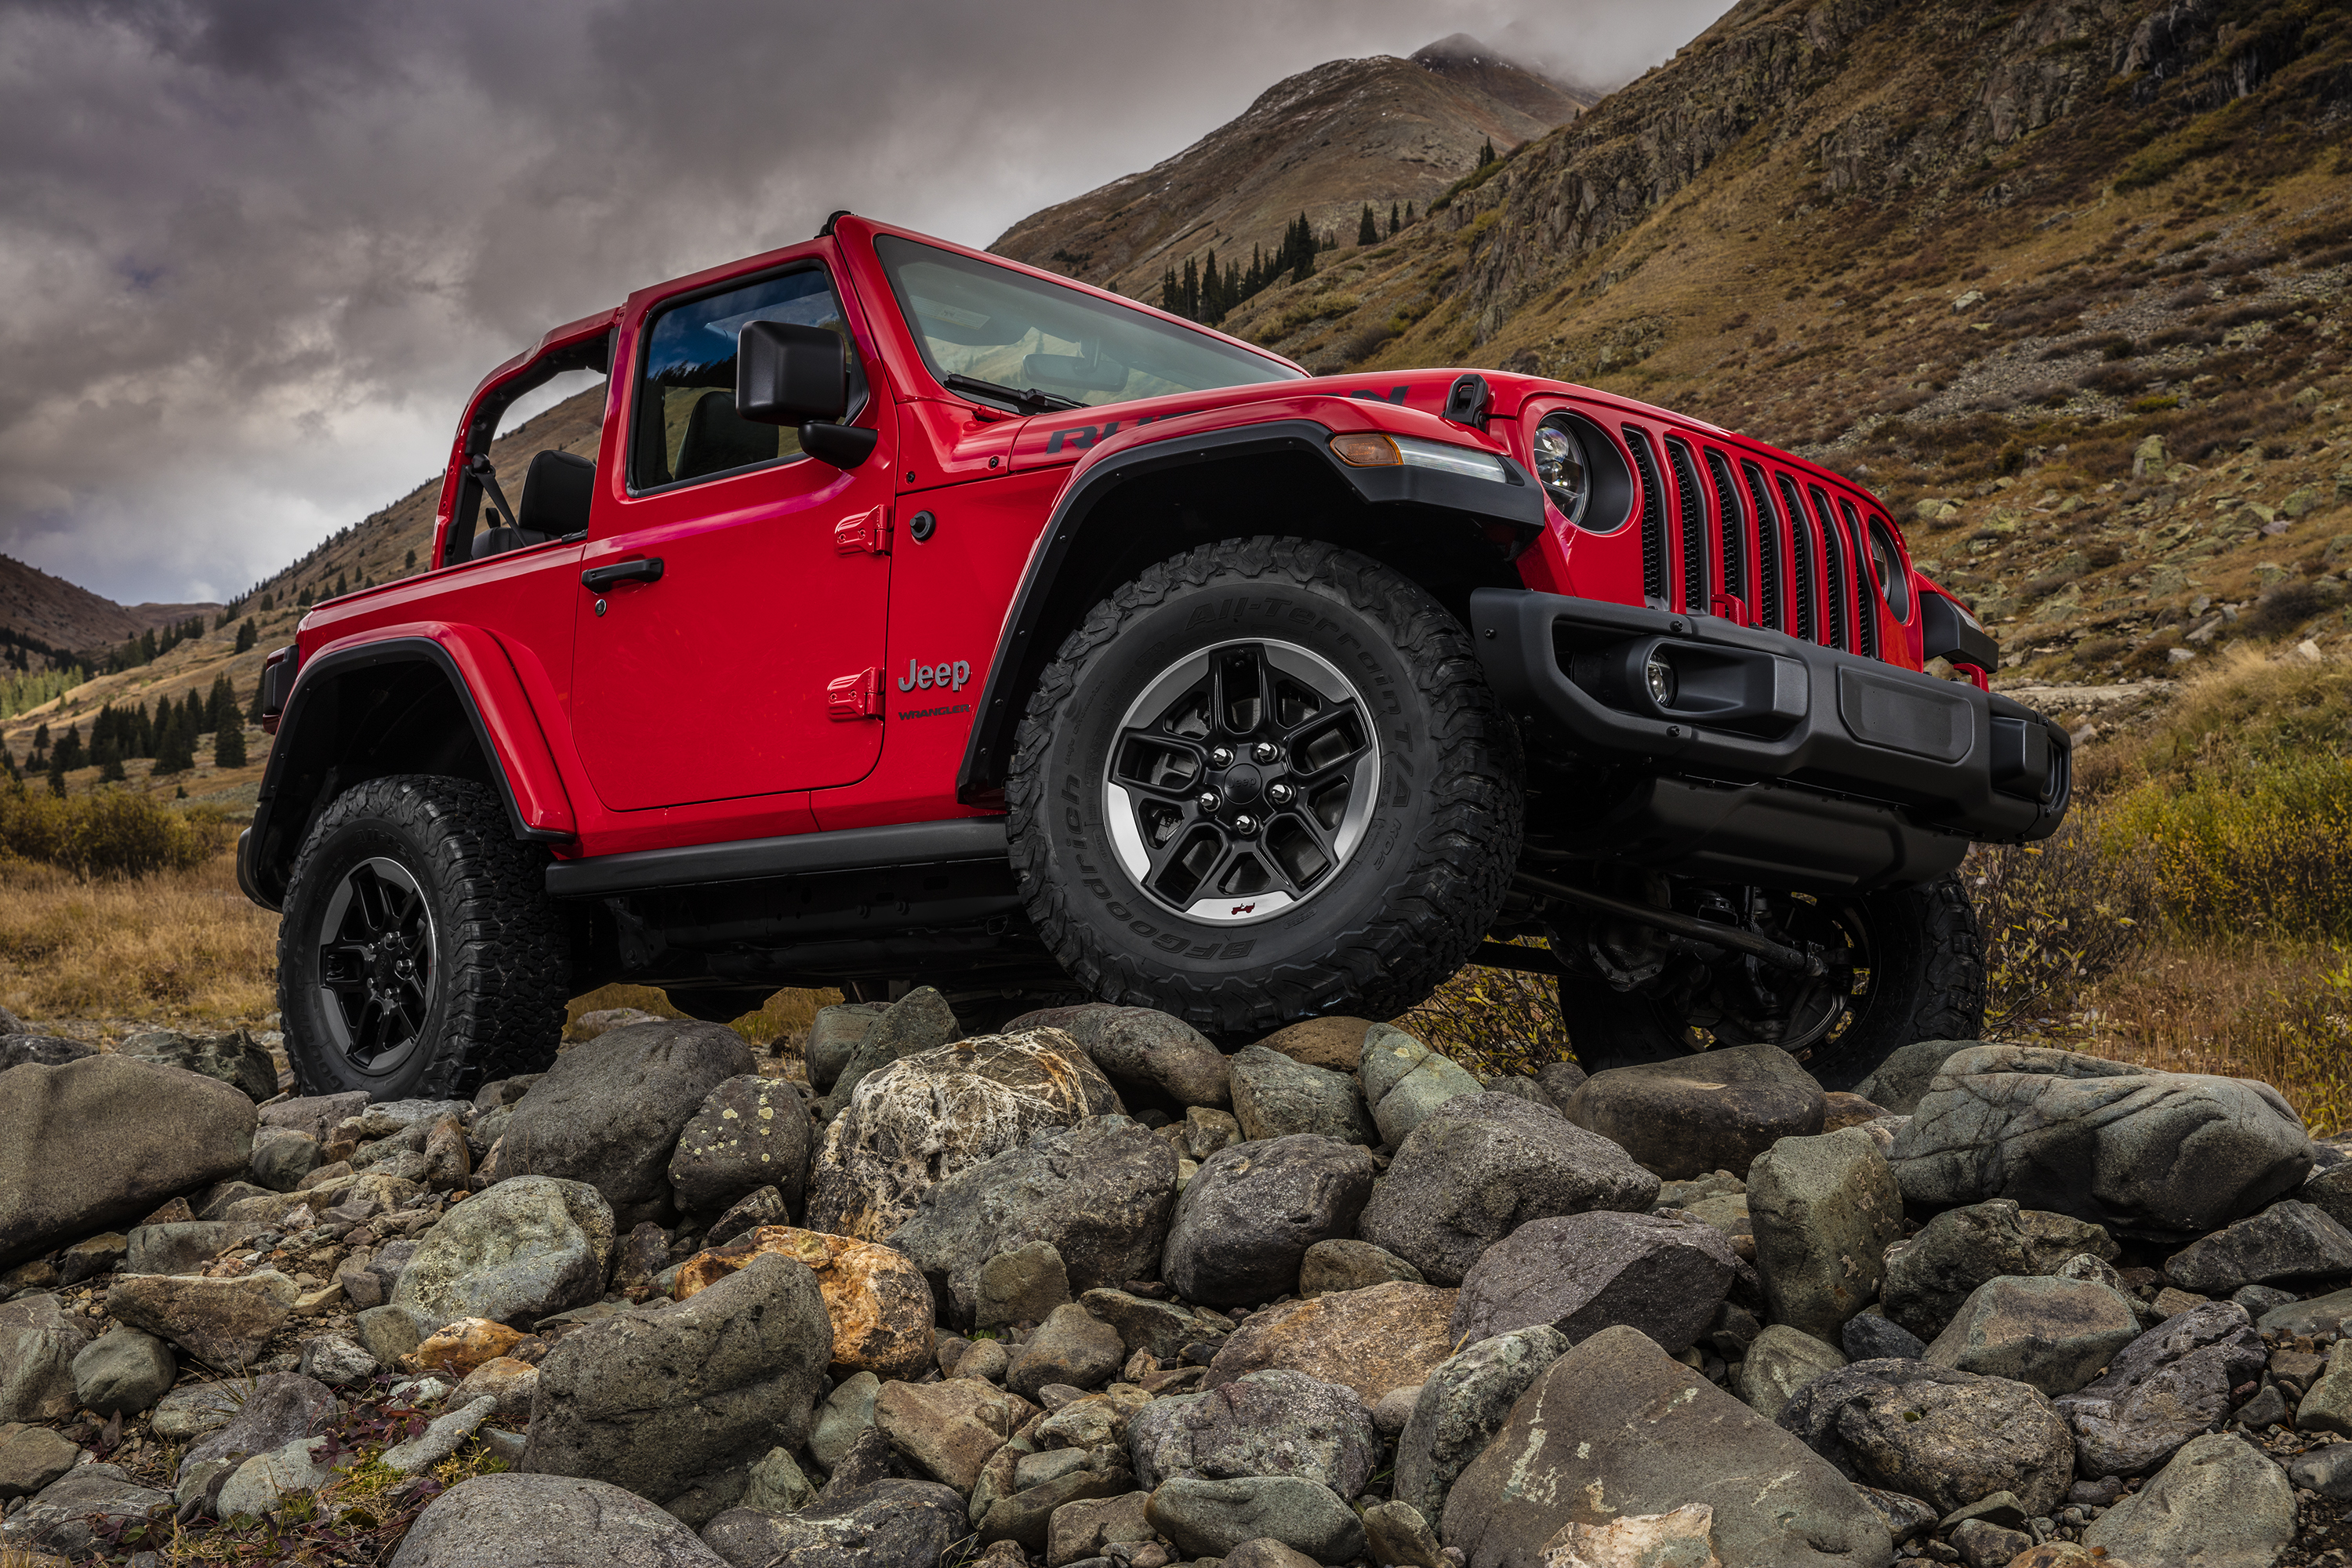 2018 Jeep Wrangler Rubicon off-road